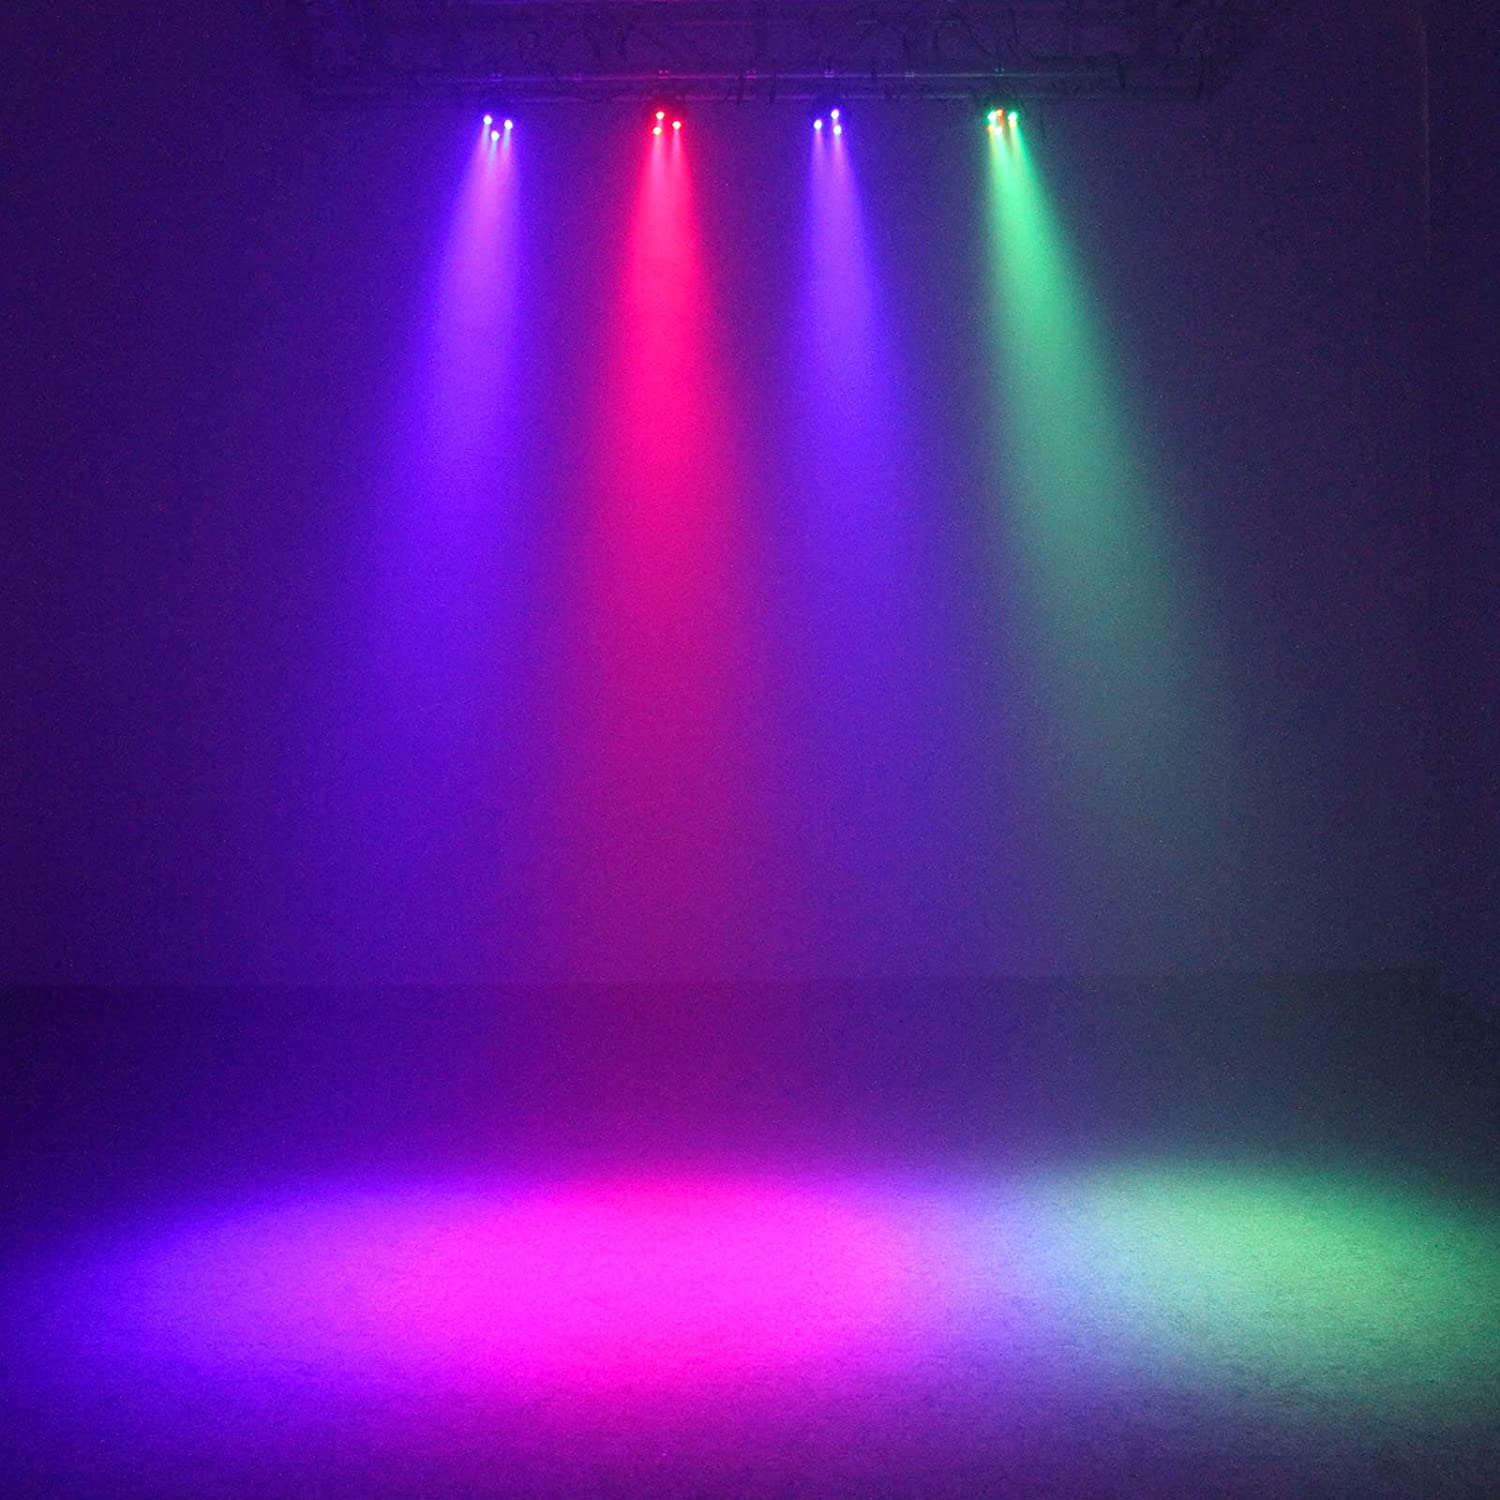 Amazon TSSS RGBW Mixing Color 12 LED Par Can Light DMX 8CH Stage Background Lighting For Party Show Wedding Live Concert 4 Pack Musical Instruments